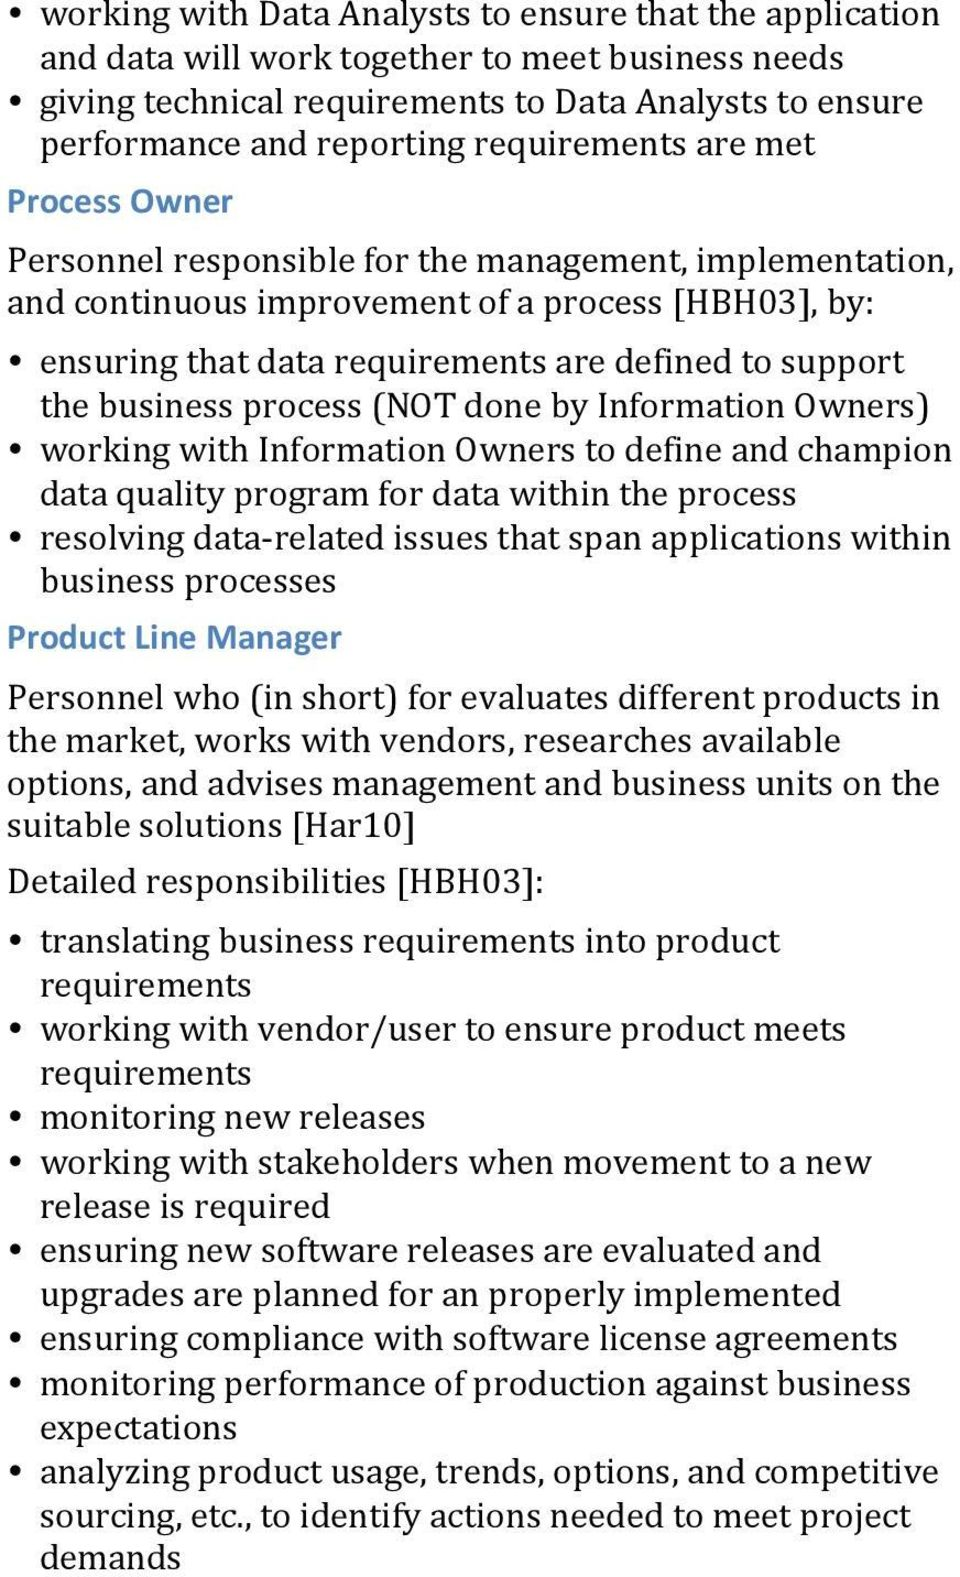 support the business process (NOT done by Information Owners) working with Information Owners to define and champion data quality program for data within the process resolving data- related issues